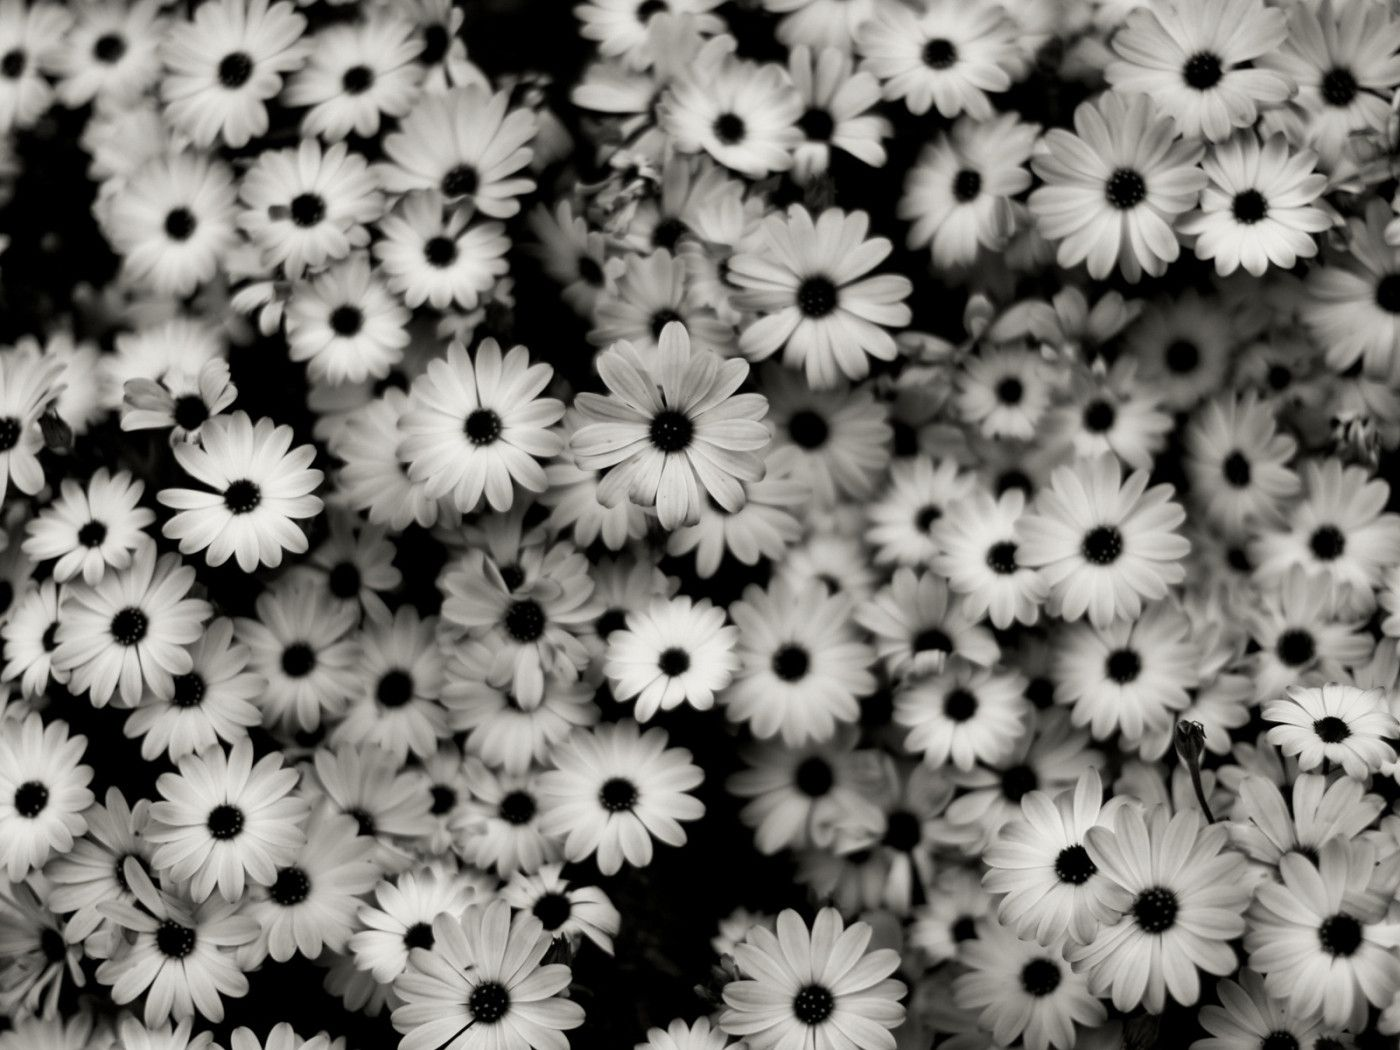 Pictures of black and white flowers google search pictures of pictures of black and white flowers google search mightylinksfo